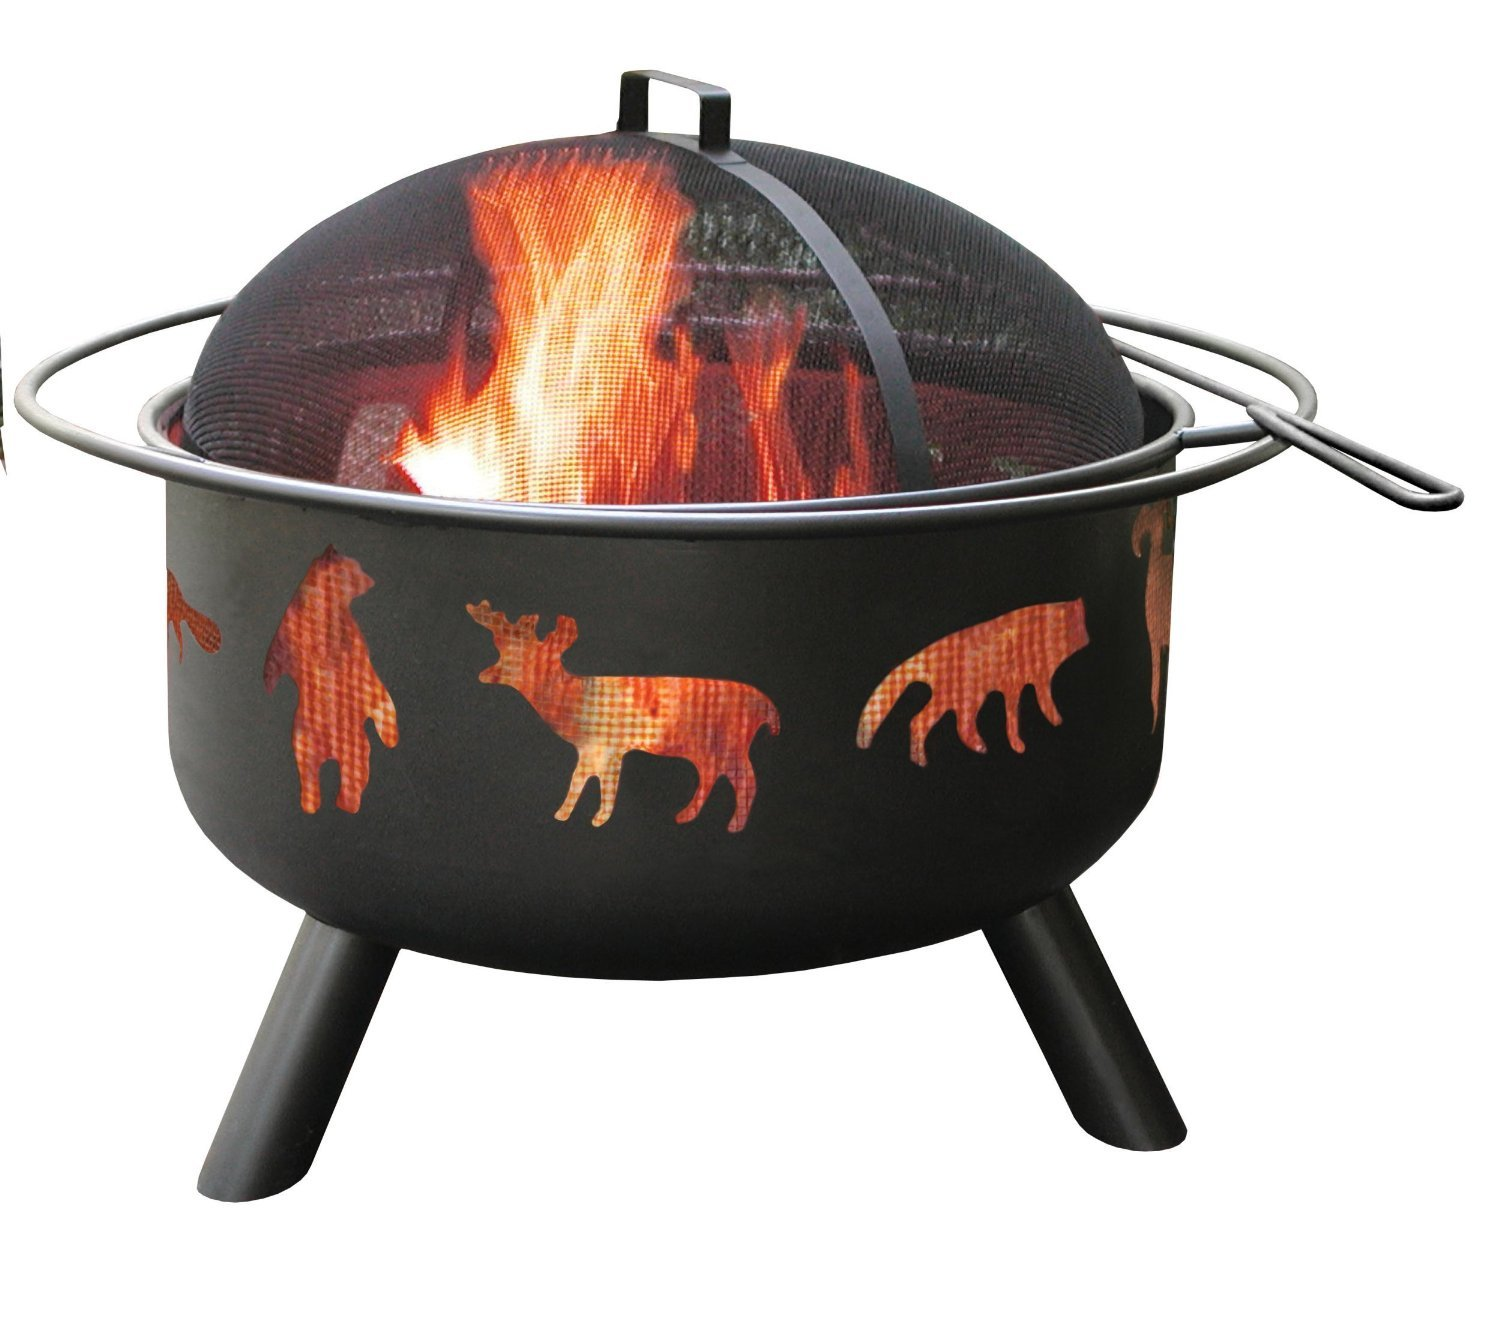 Landmann 28347 Big Sky Wildlife Fire Pit, Black, 12.5-inches Deep